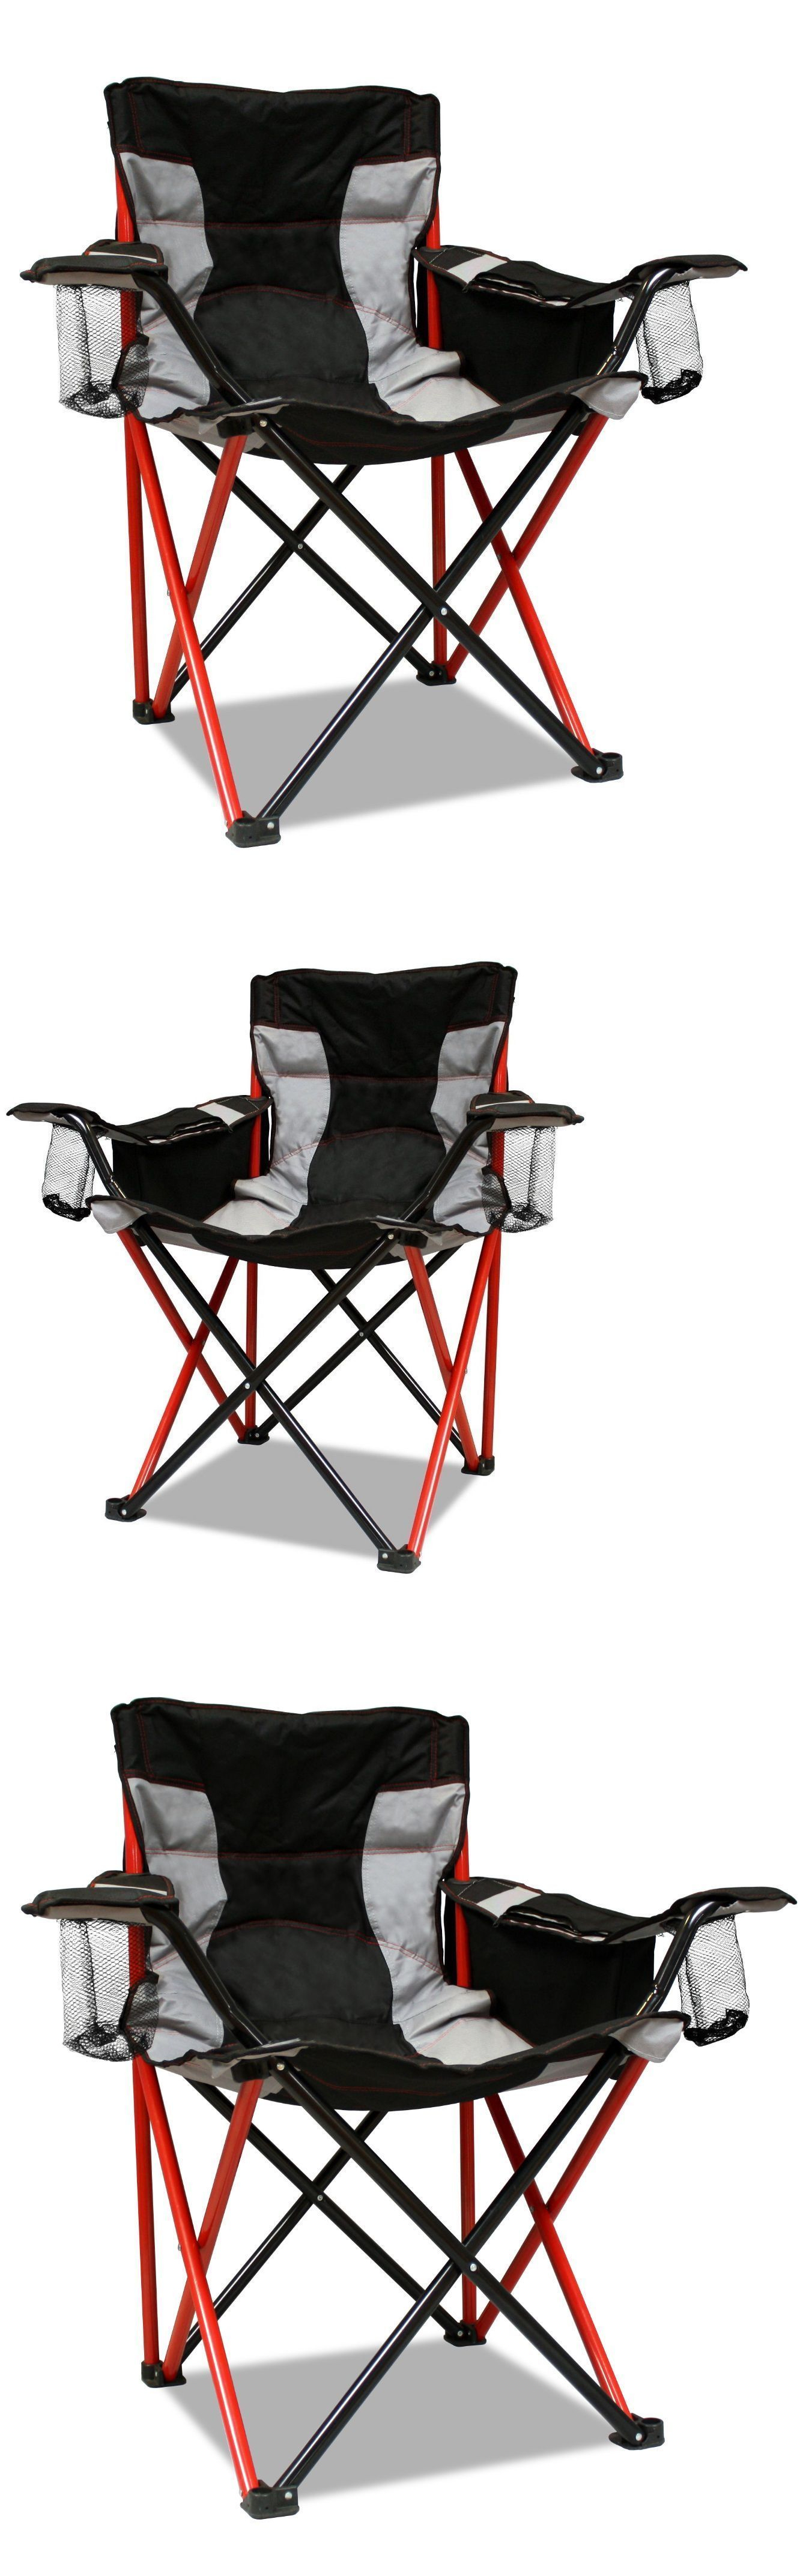 Camping Furniture Oversized Big Heavy Duty Camping Chair